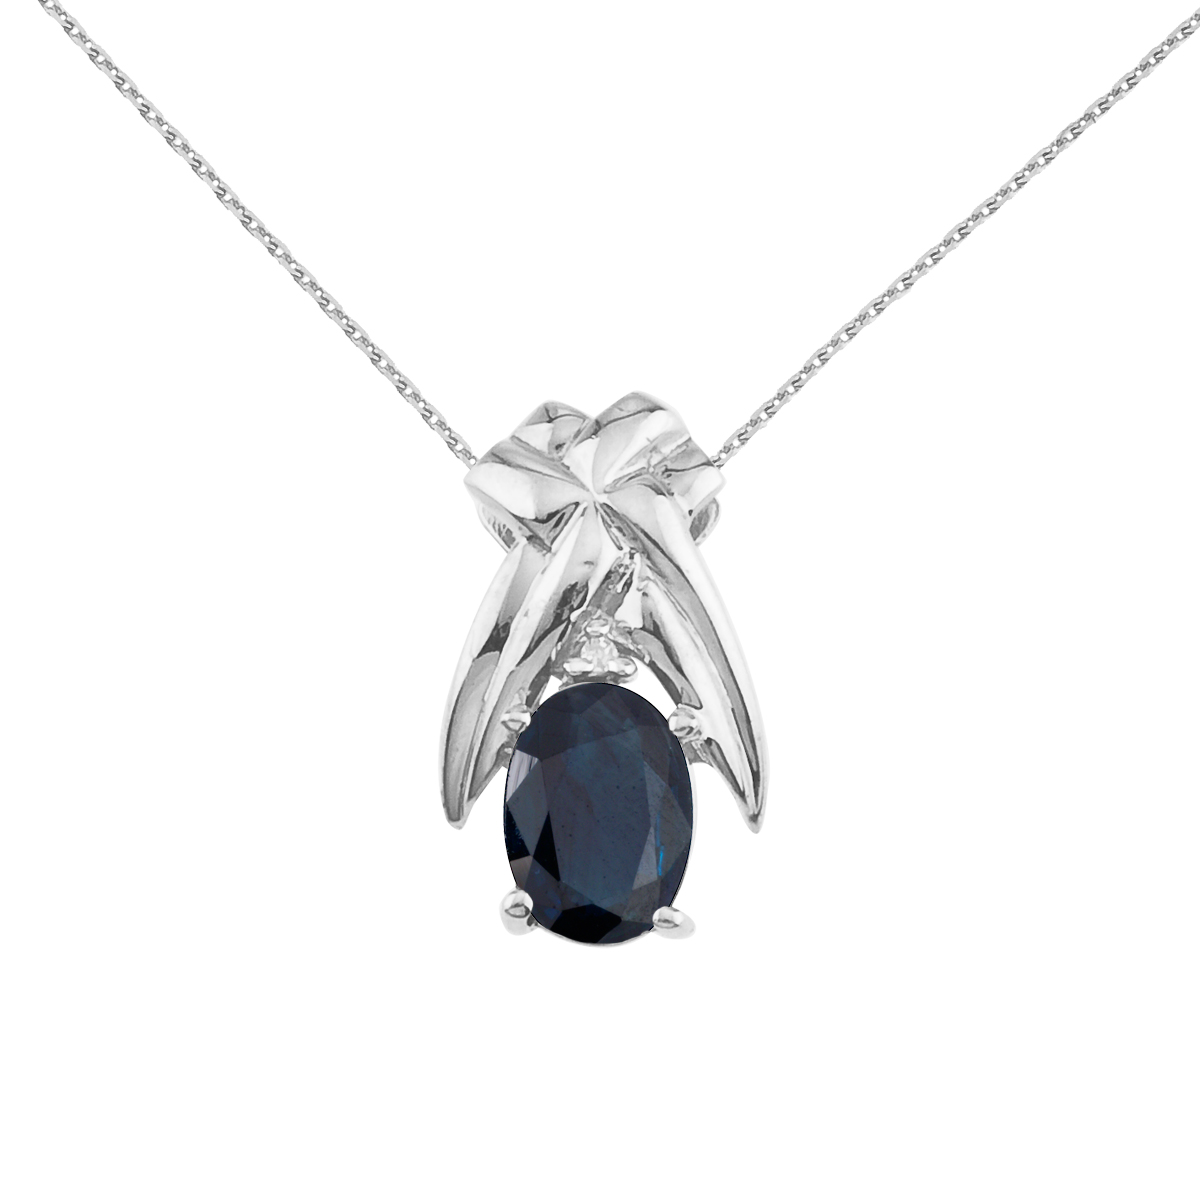 7x5 mm natural sapphire and diamond accented pendant in 14k yellow gold.